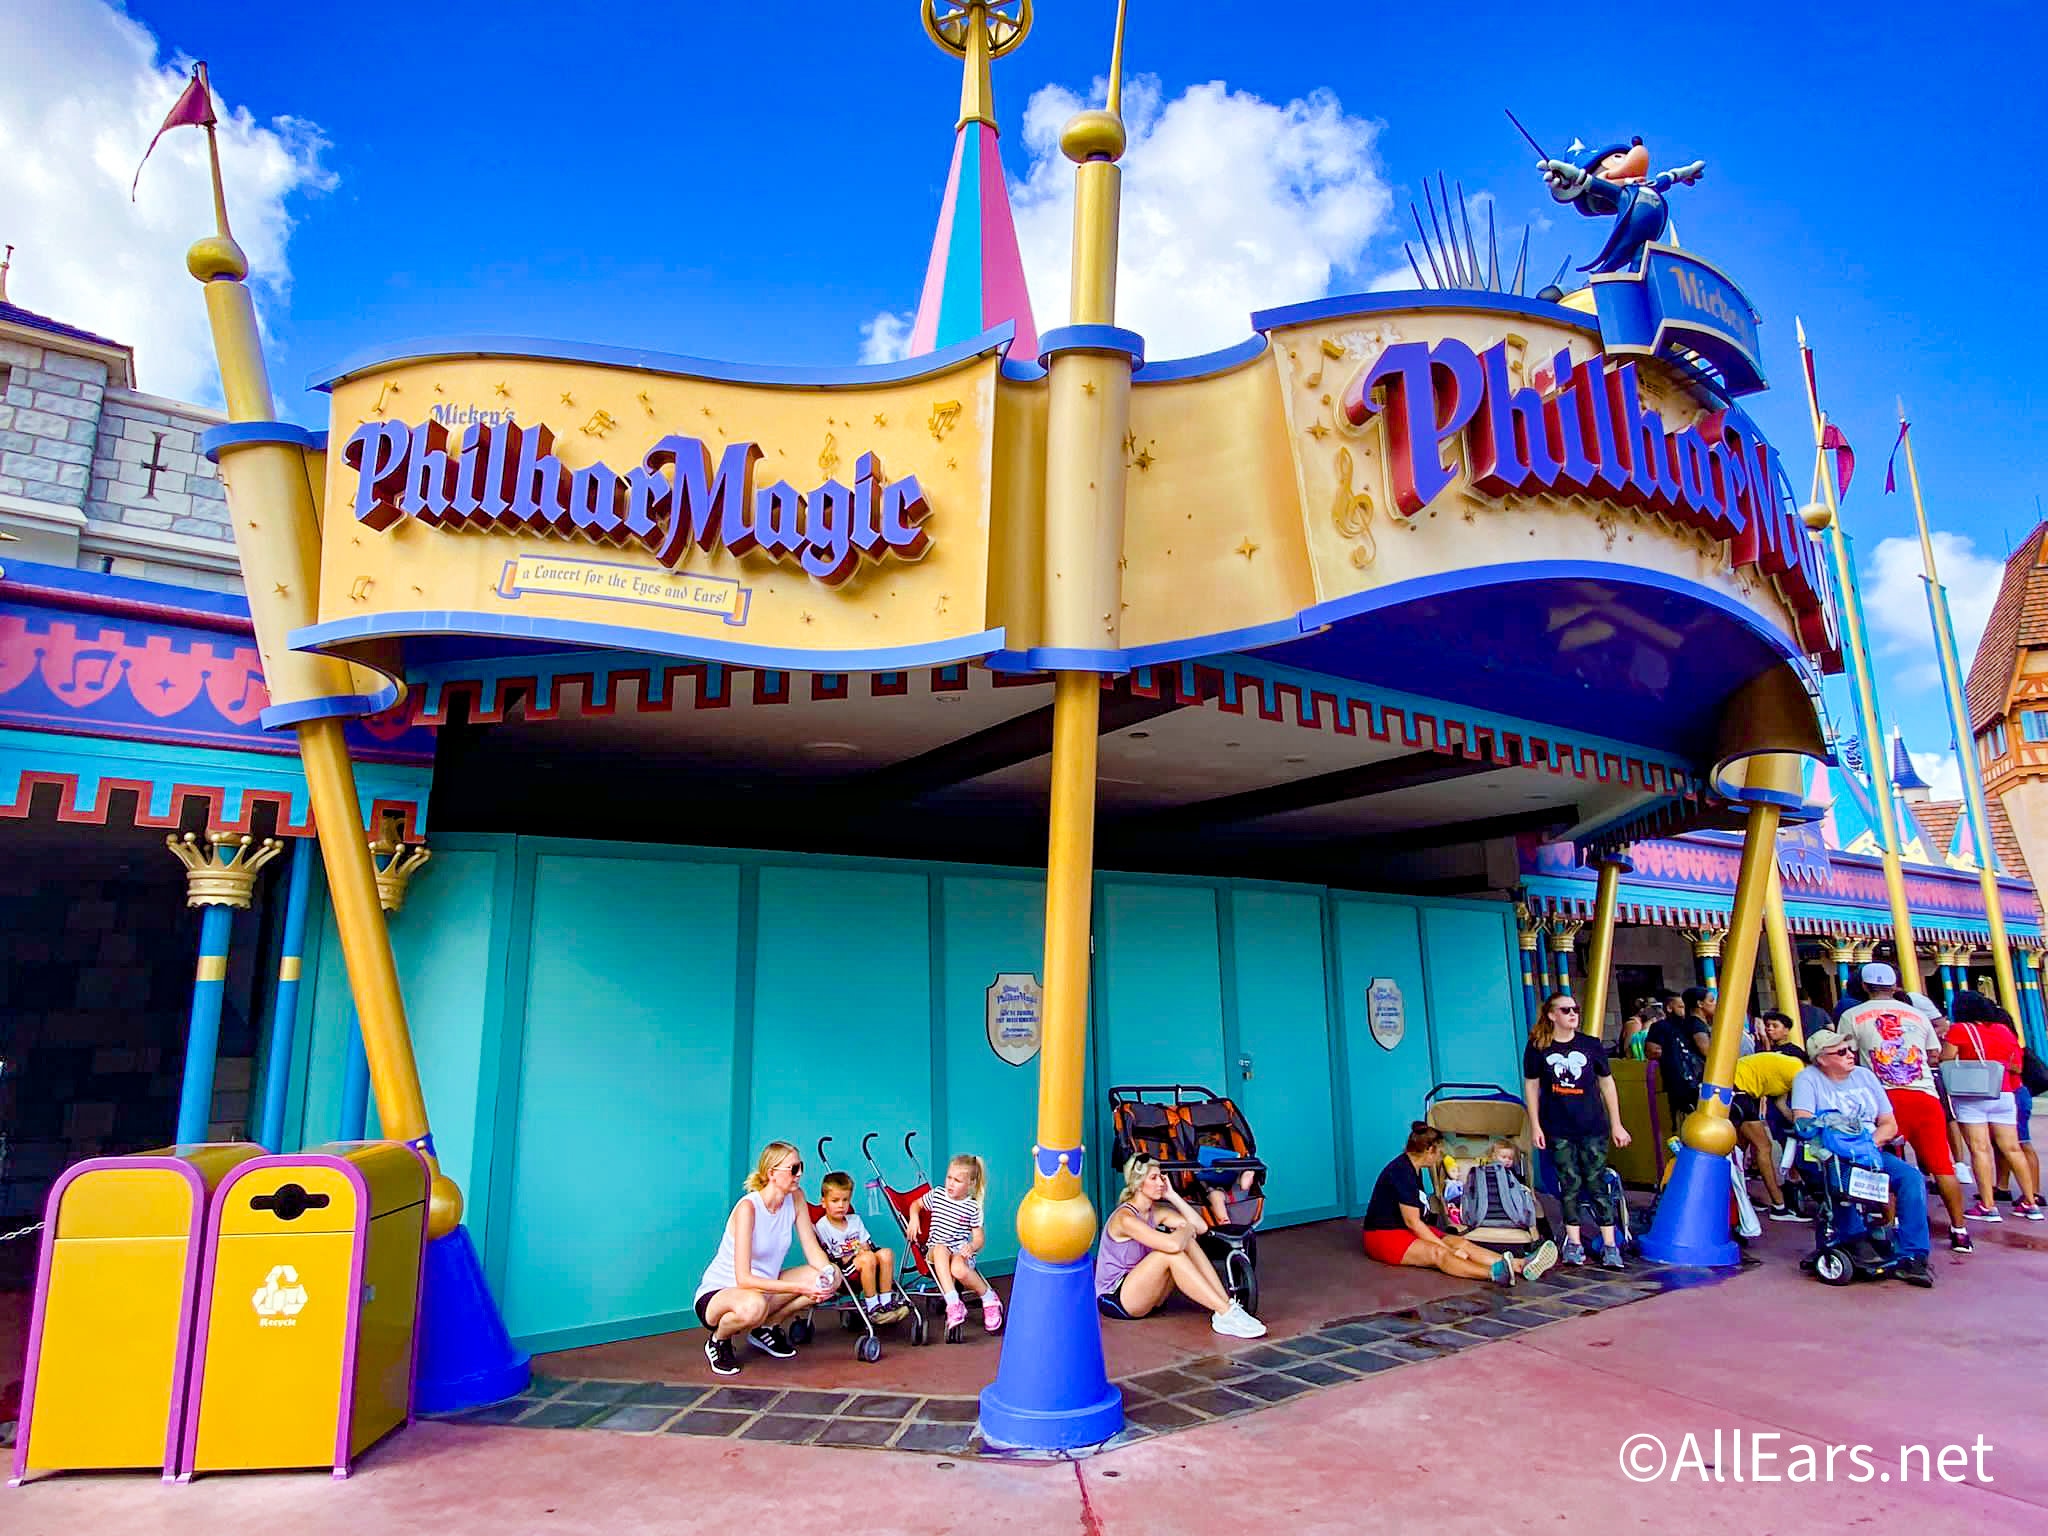 3 Attractions, 1 Shop, and More Will Be CLOSED in Disney World Next Week! - AllEars.Net